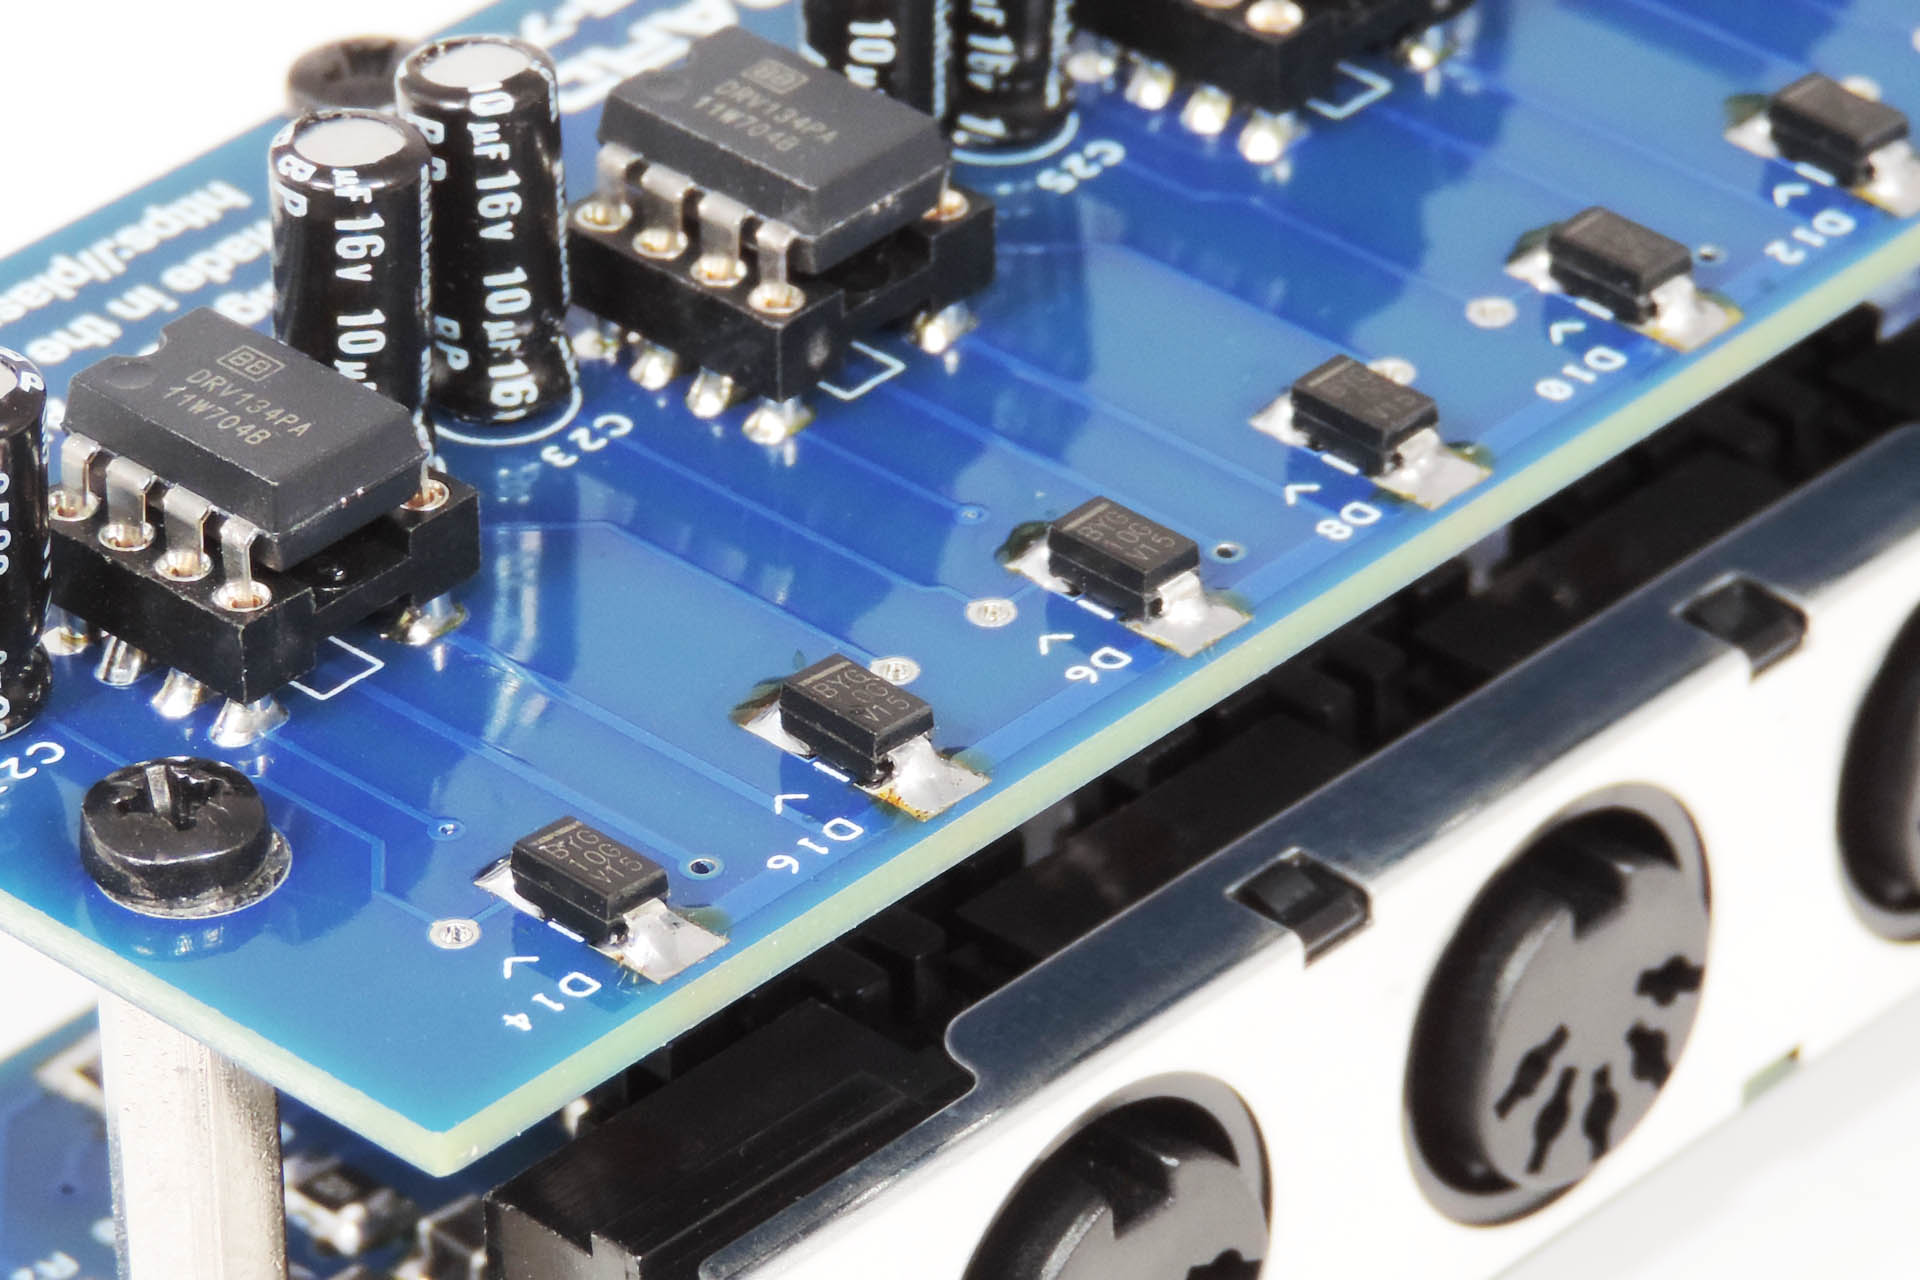 Nebula has diode protection on all output phases